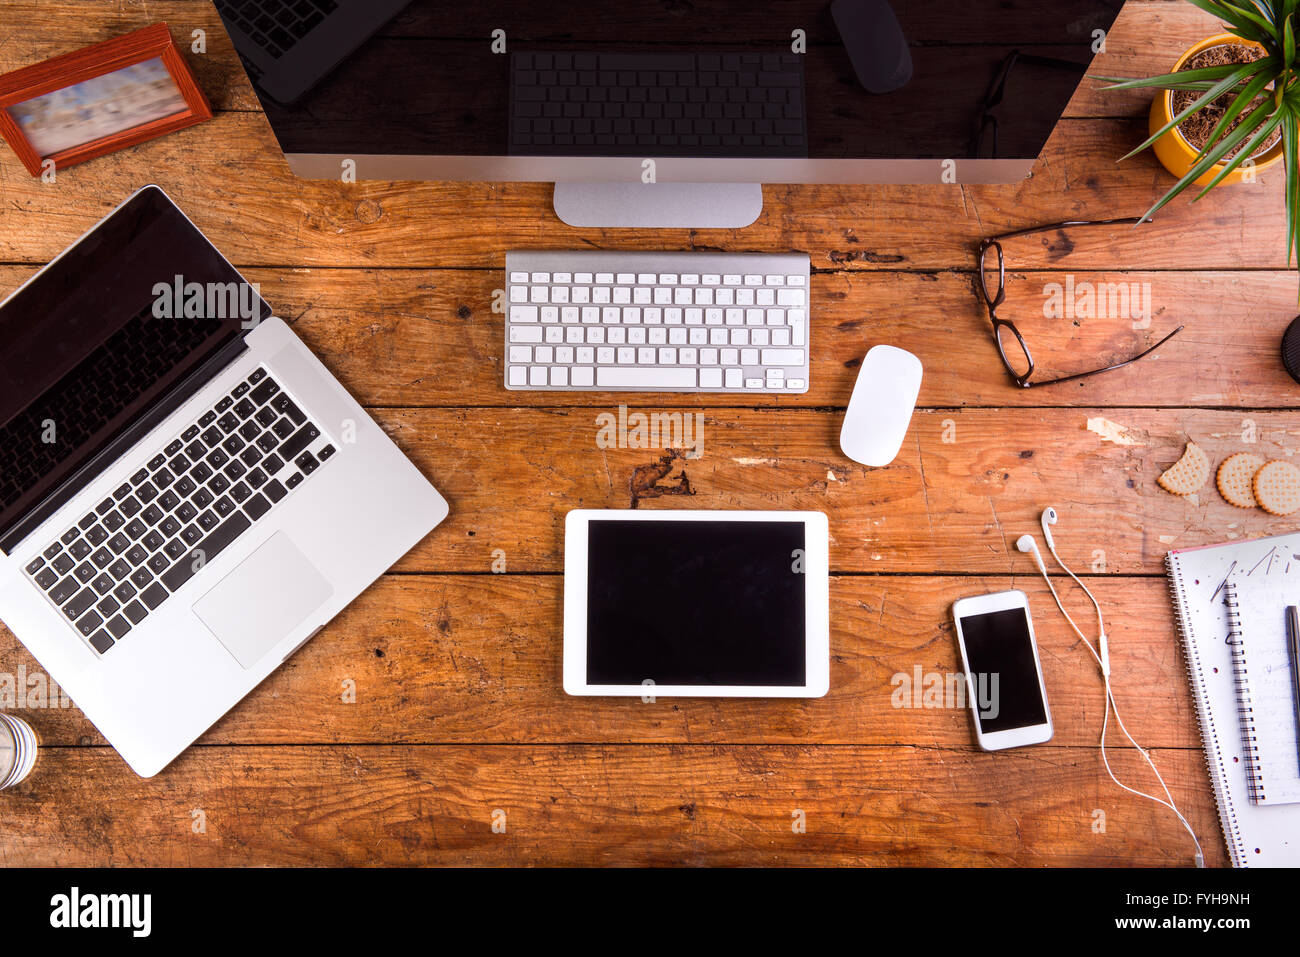 desk, gadgets and office supplies. flat lay. wooden background